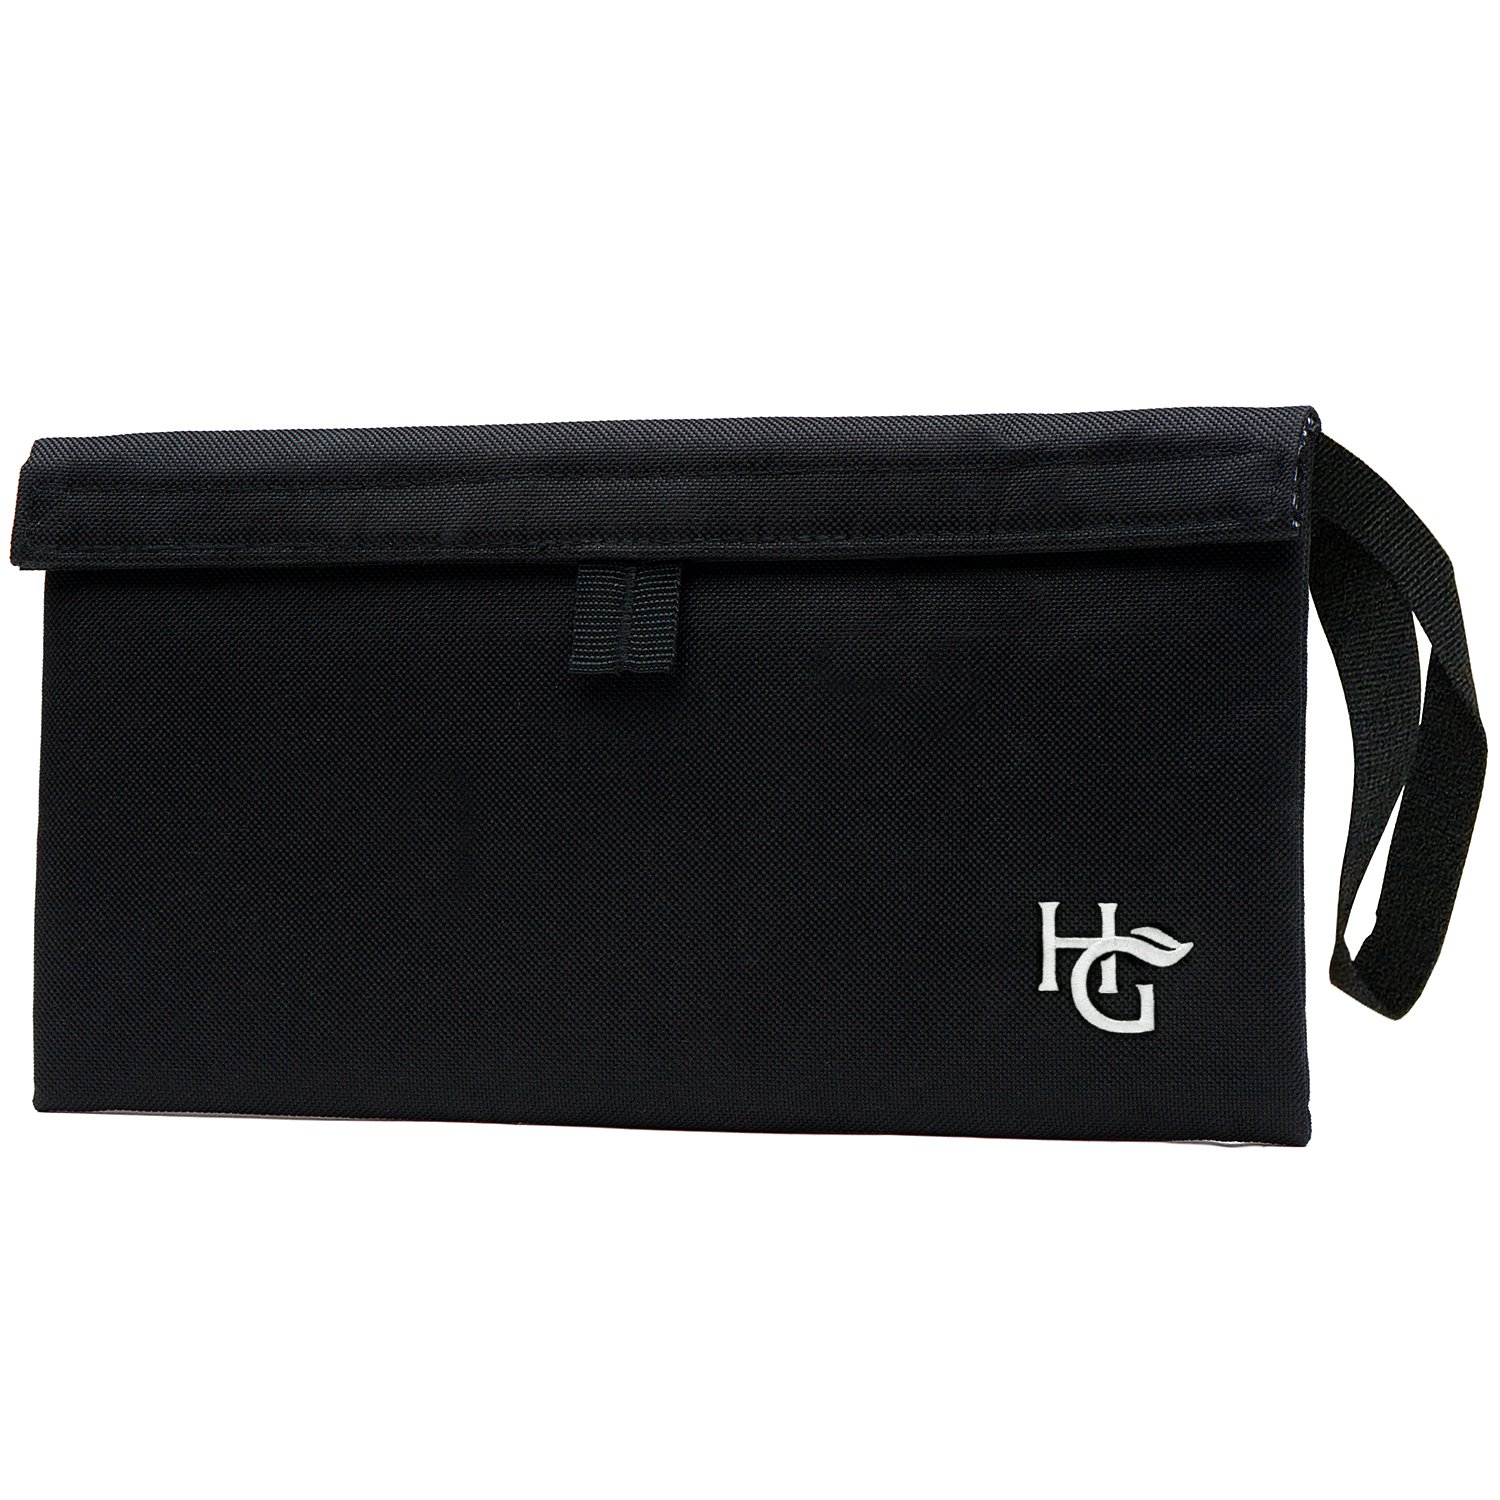 Herb Guard Premium Smell Proof Bag (11x6 inches, Holds 2 Ounces) - Comes with 2 Resealable Travel Bags to Store Herbs & Consumable Goods and Keep Them Fresh for Months